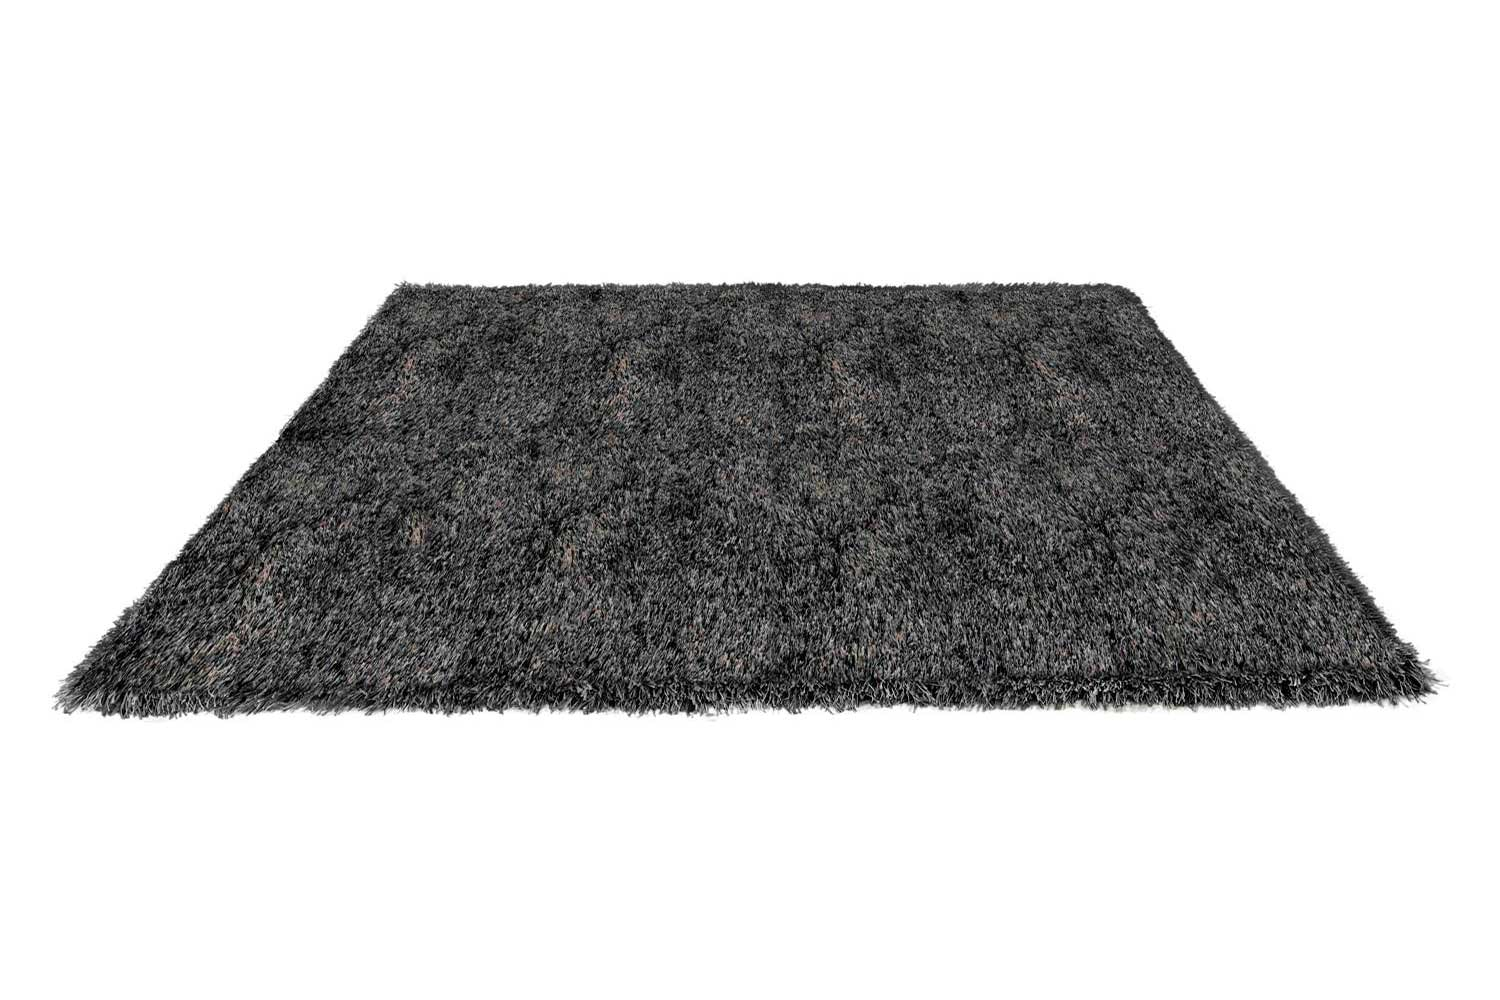 Tiffany Rug - Granite